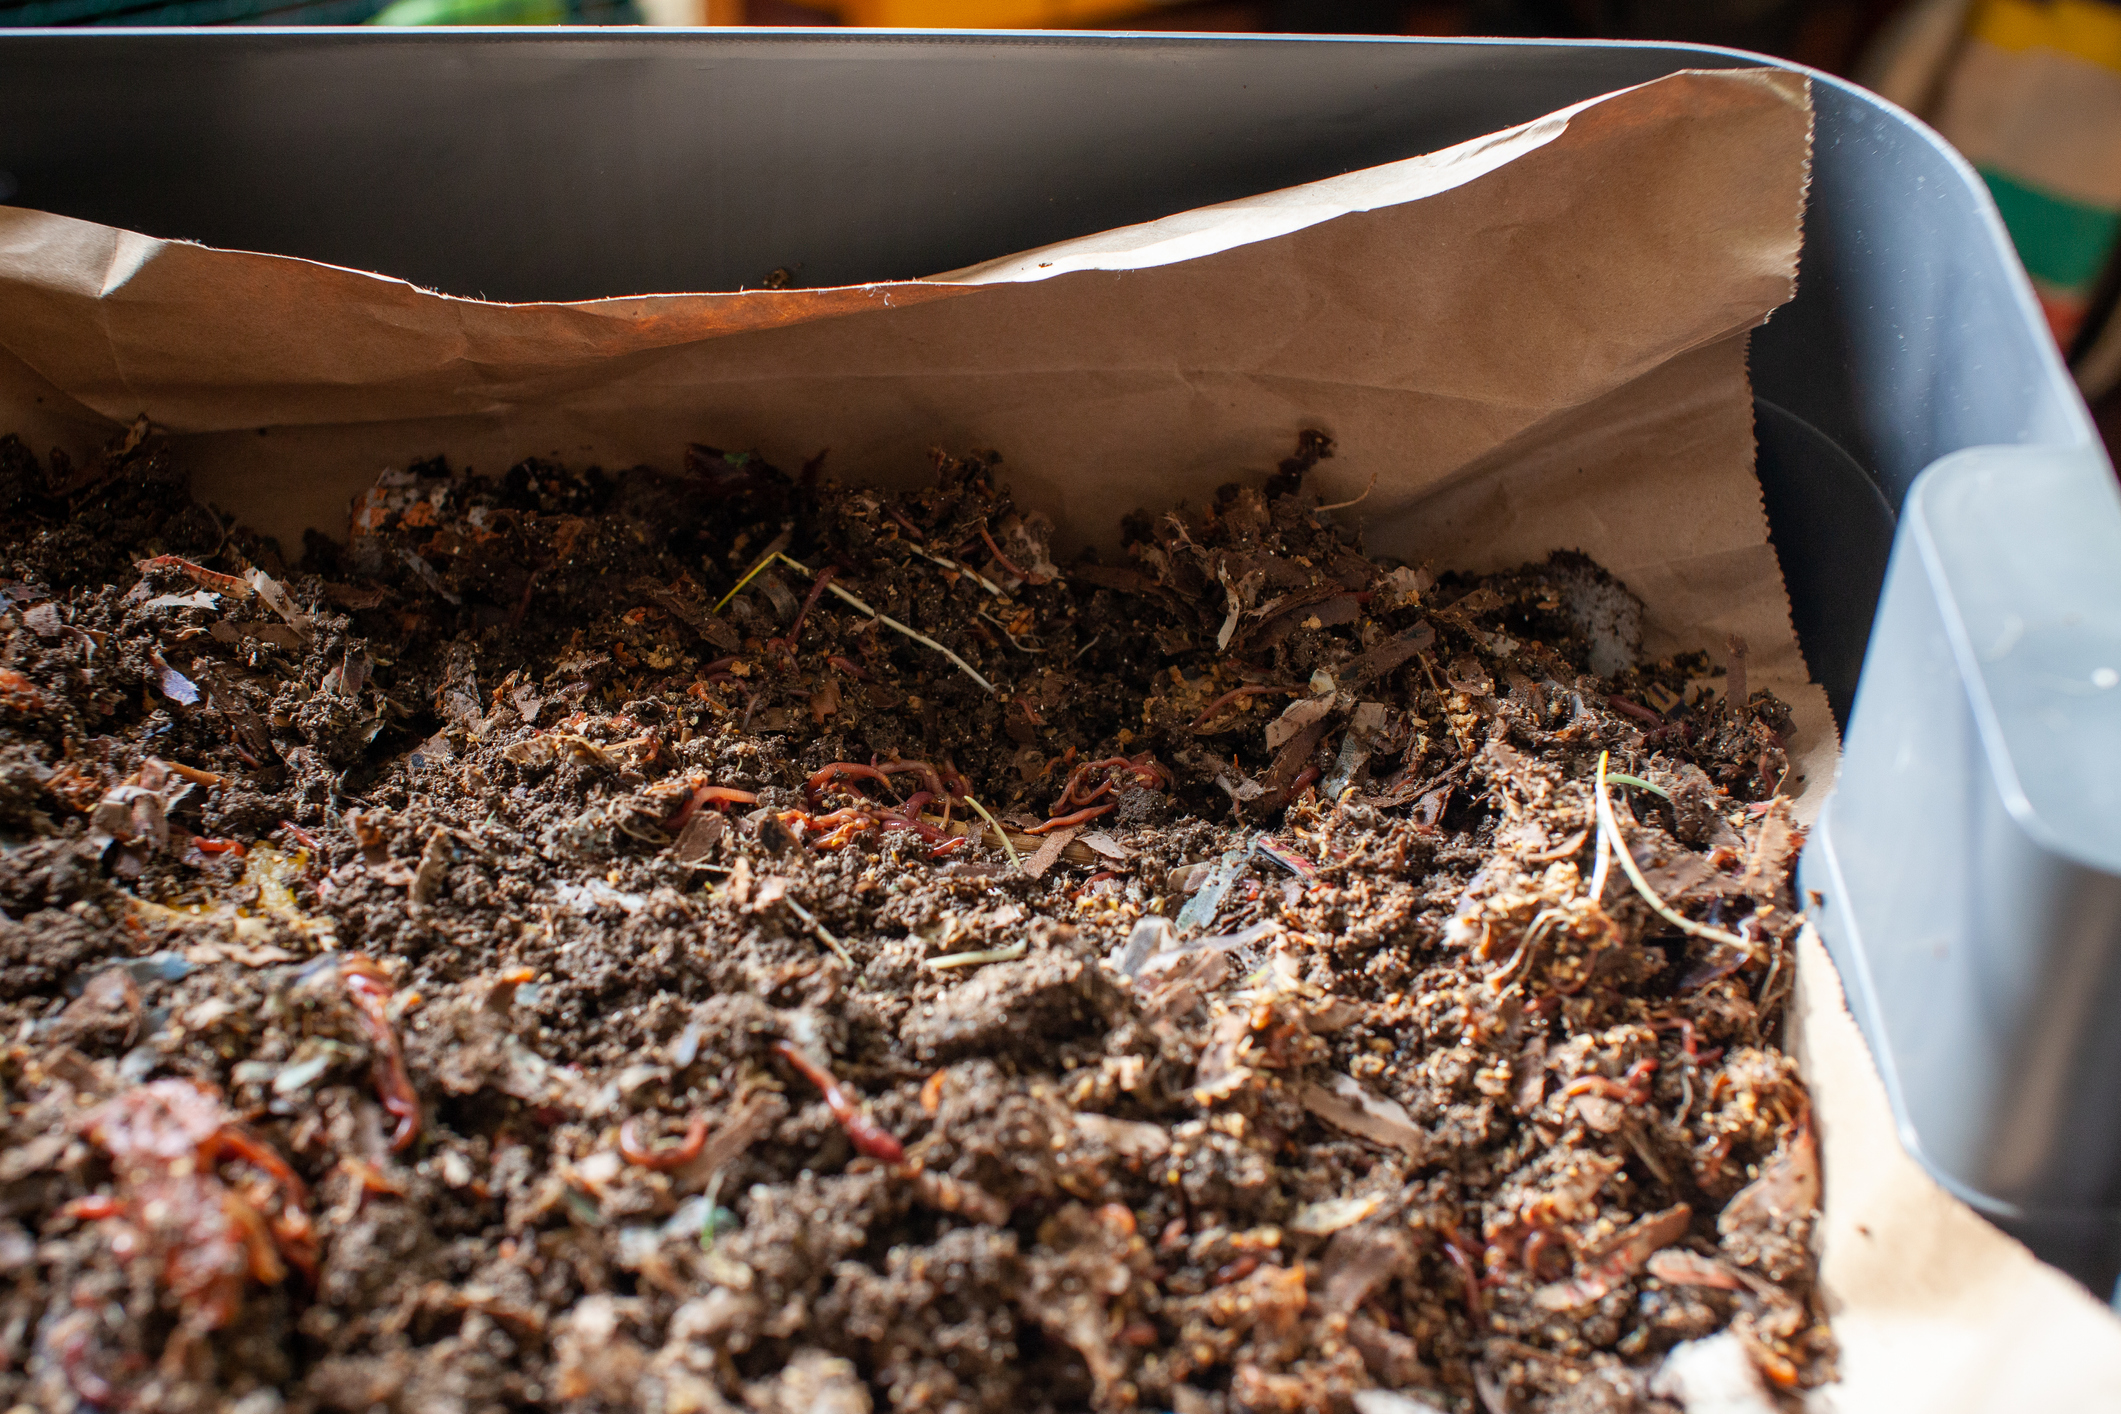 What's the difference between vermicomposting and composting?